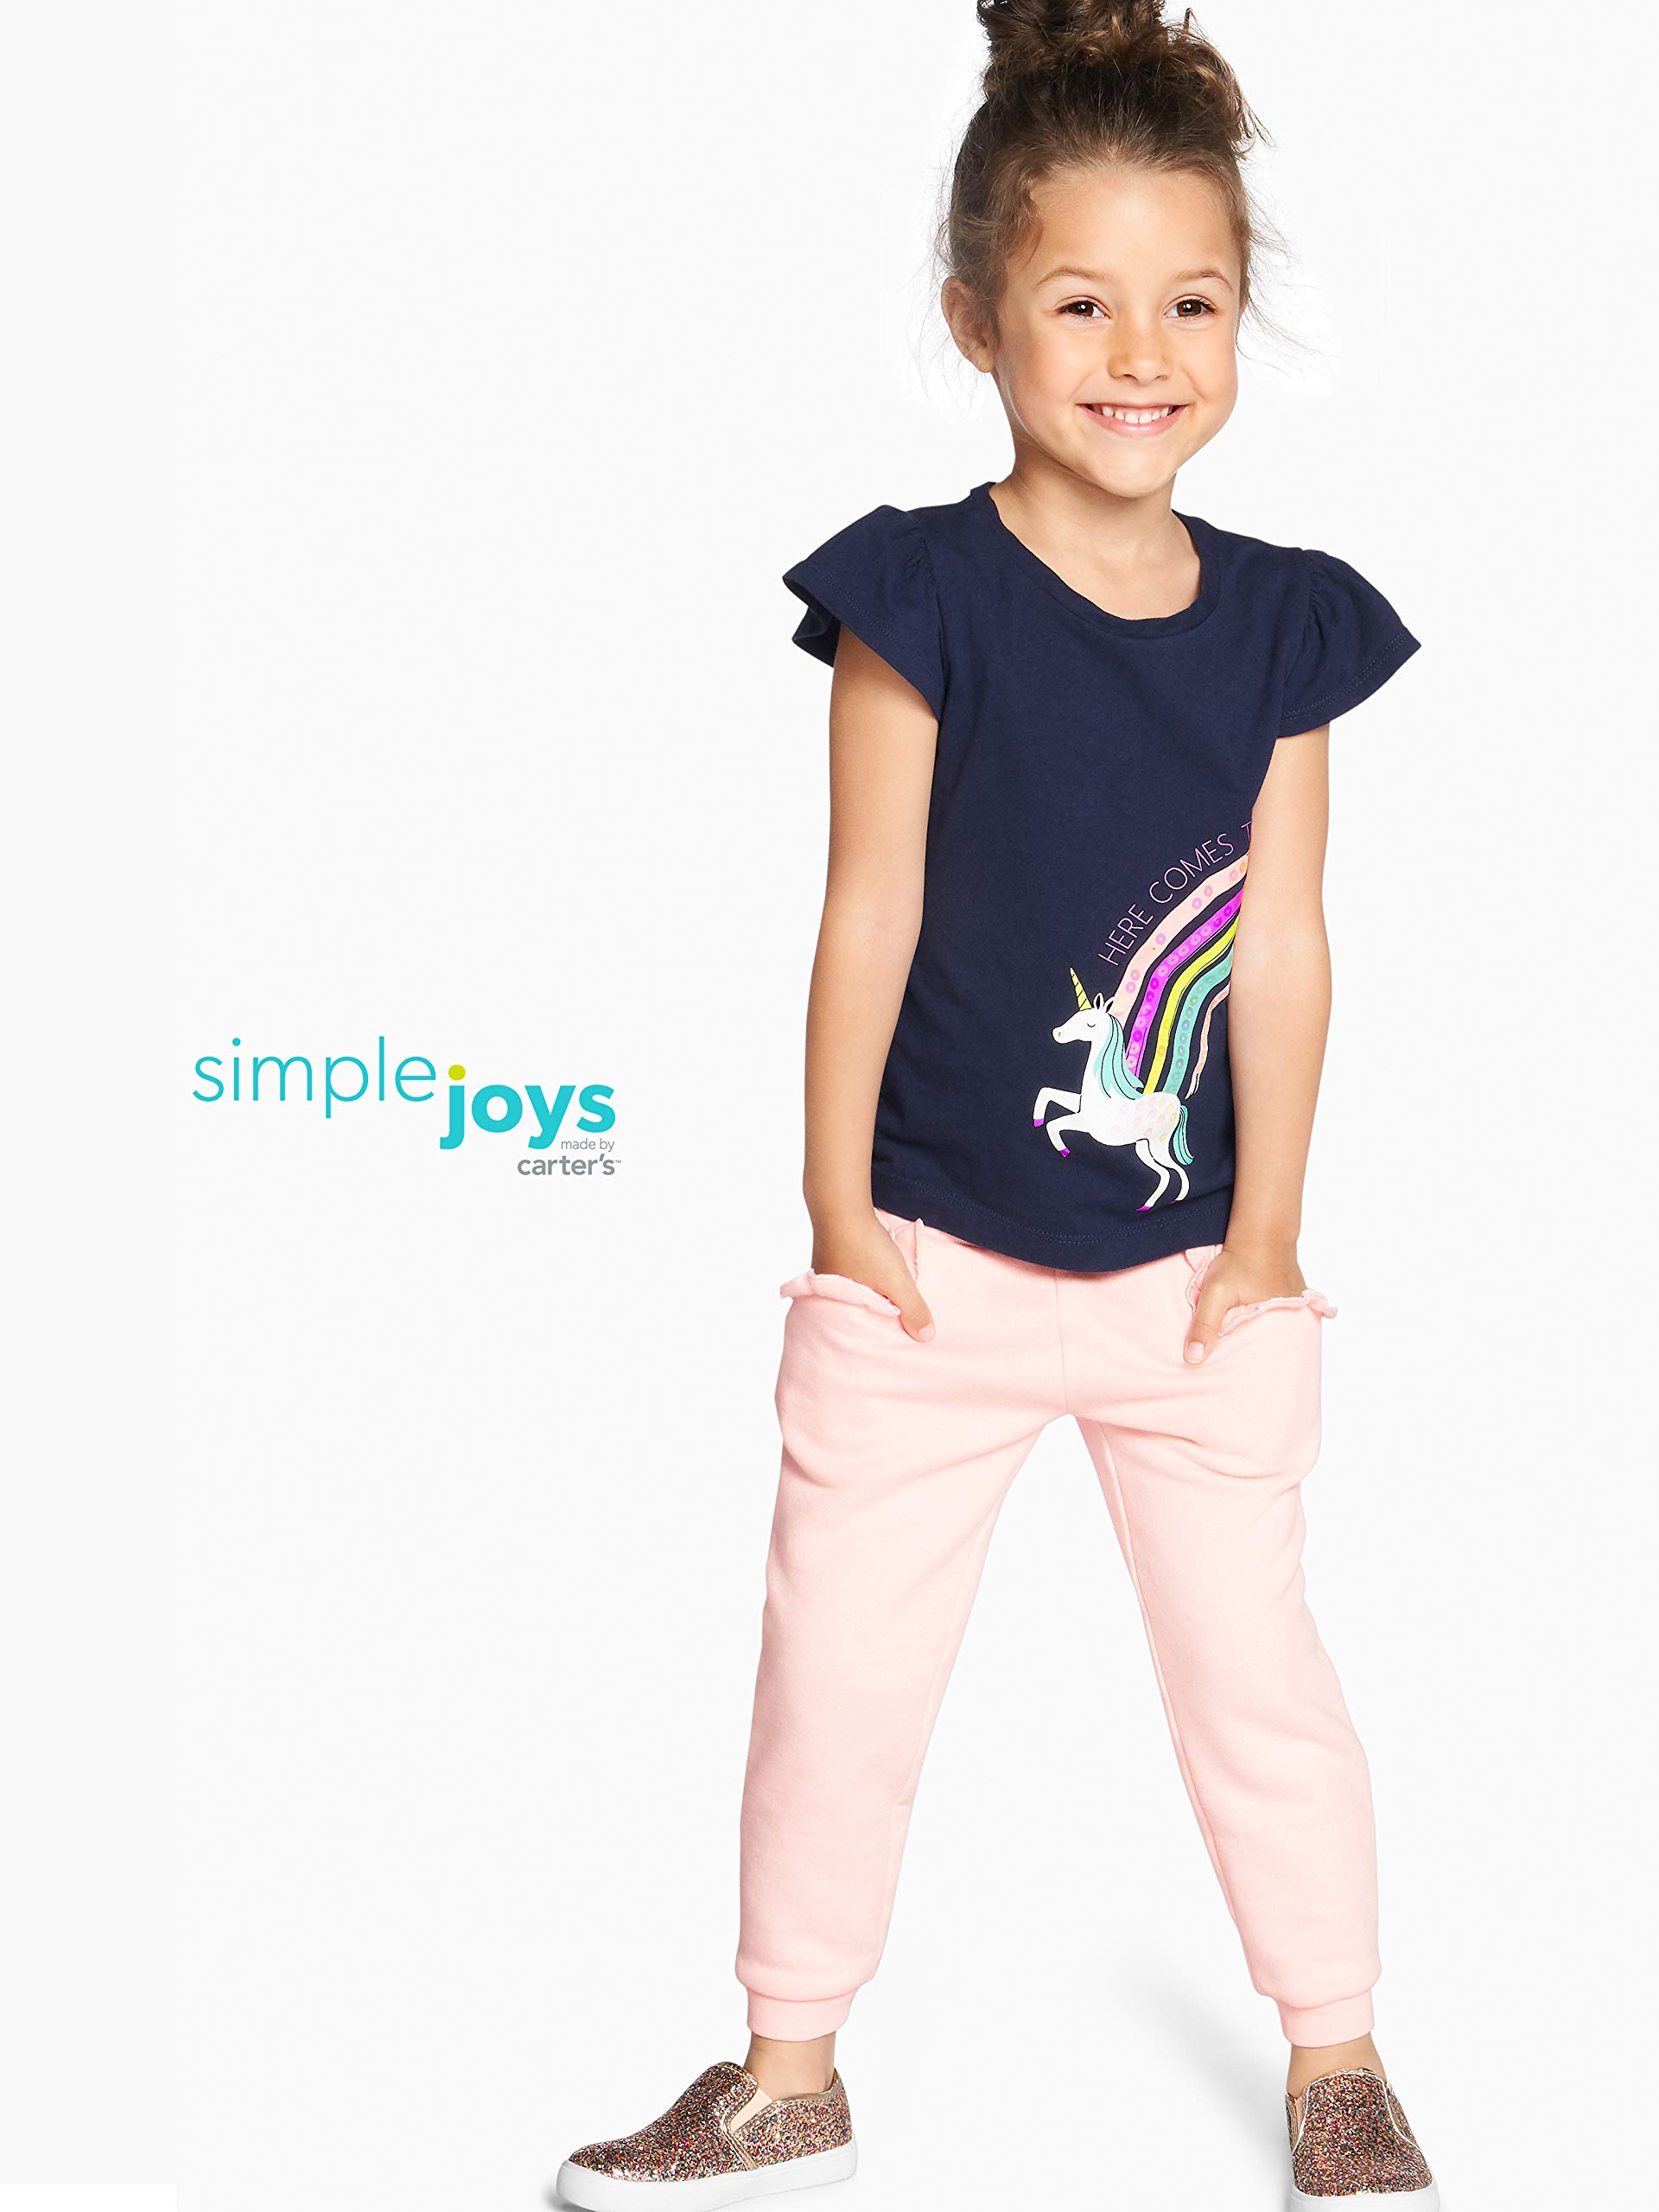 Simple Joys by Carter's Girls' Toddler 2-Pack Pull on Fleece Pants, Gray/Pink, 3T by Simple Joys by Carter's (Image #2)